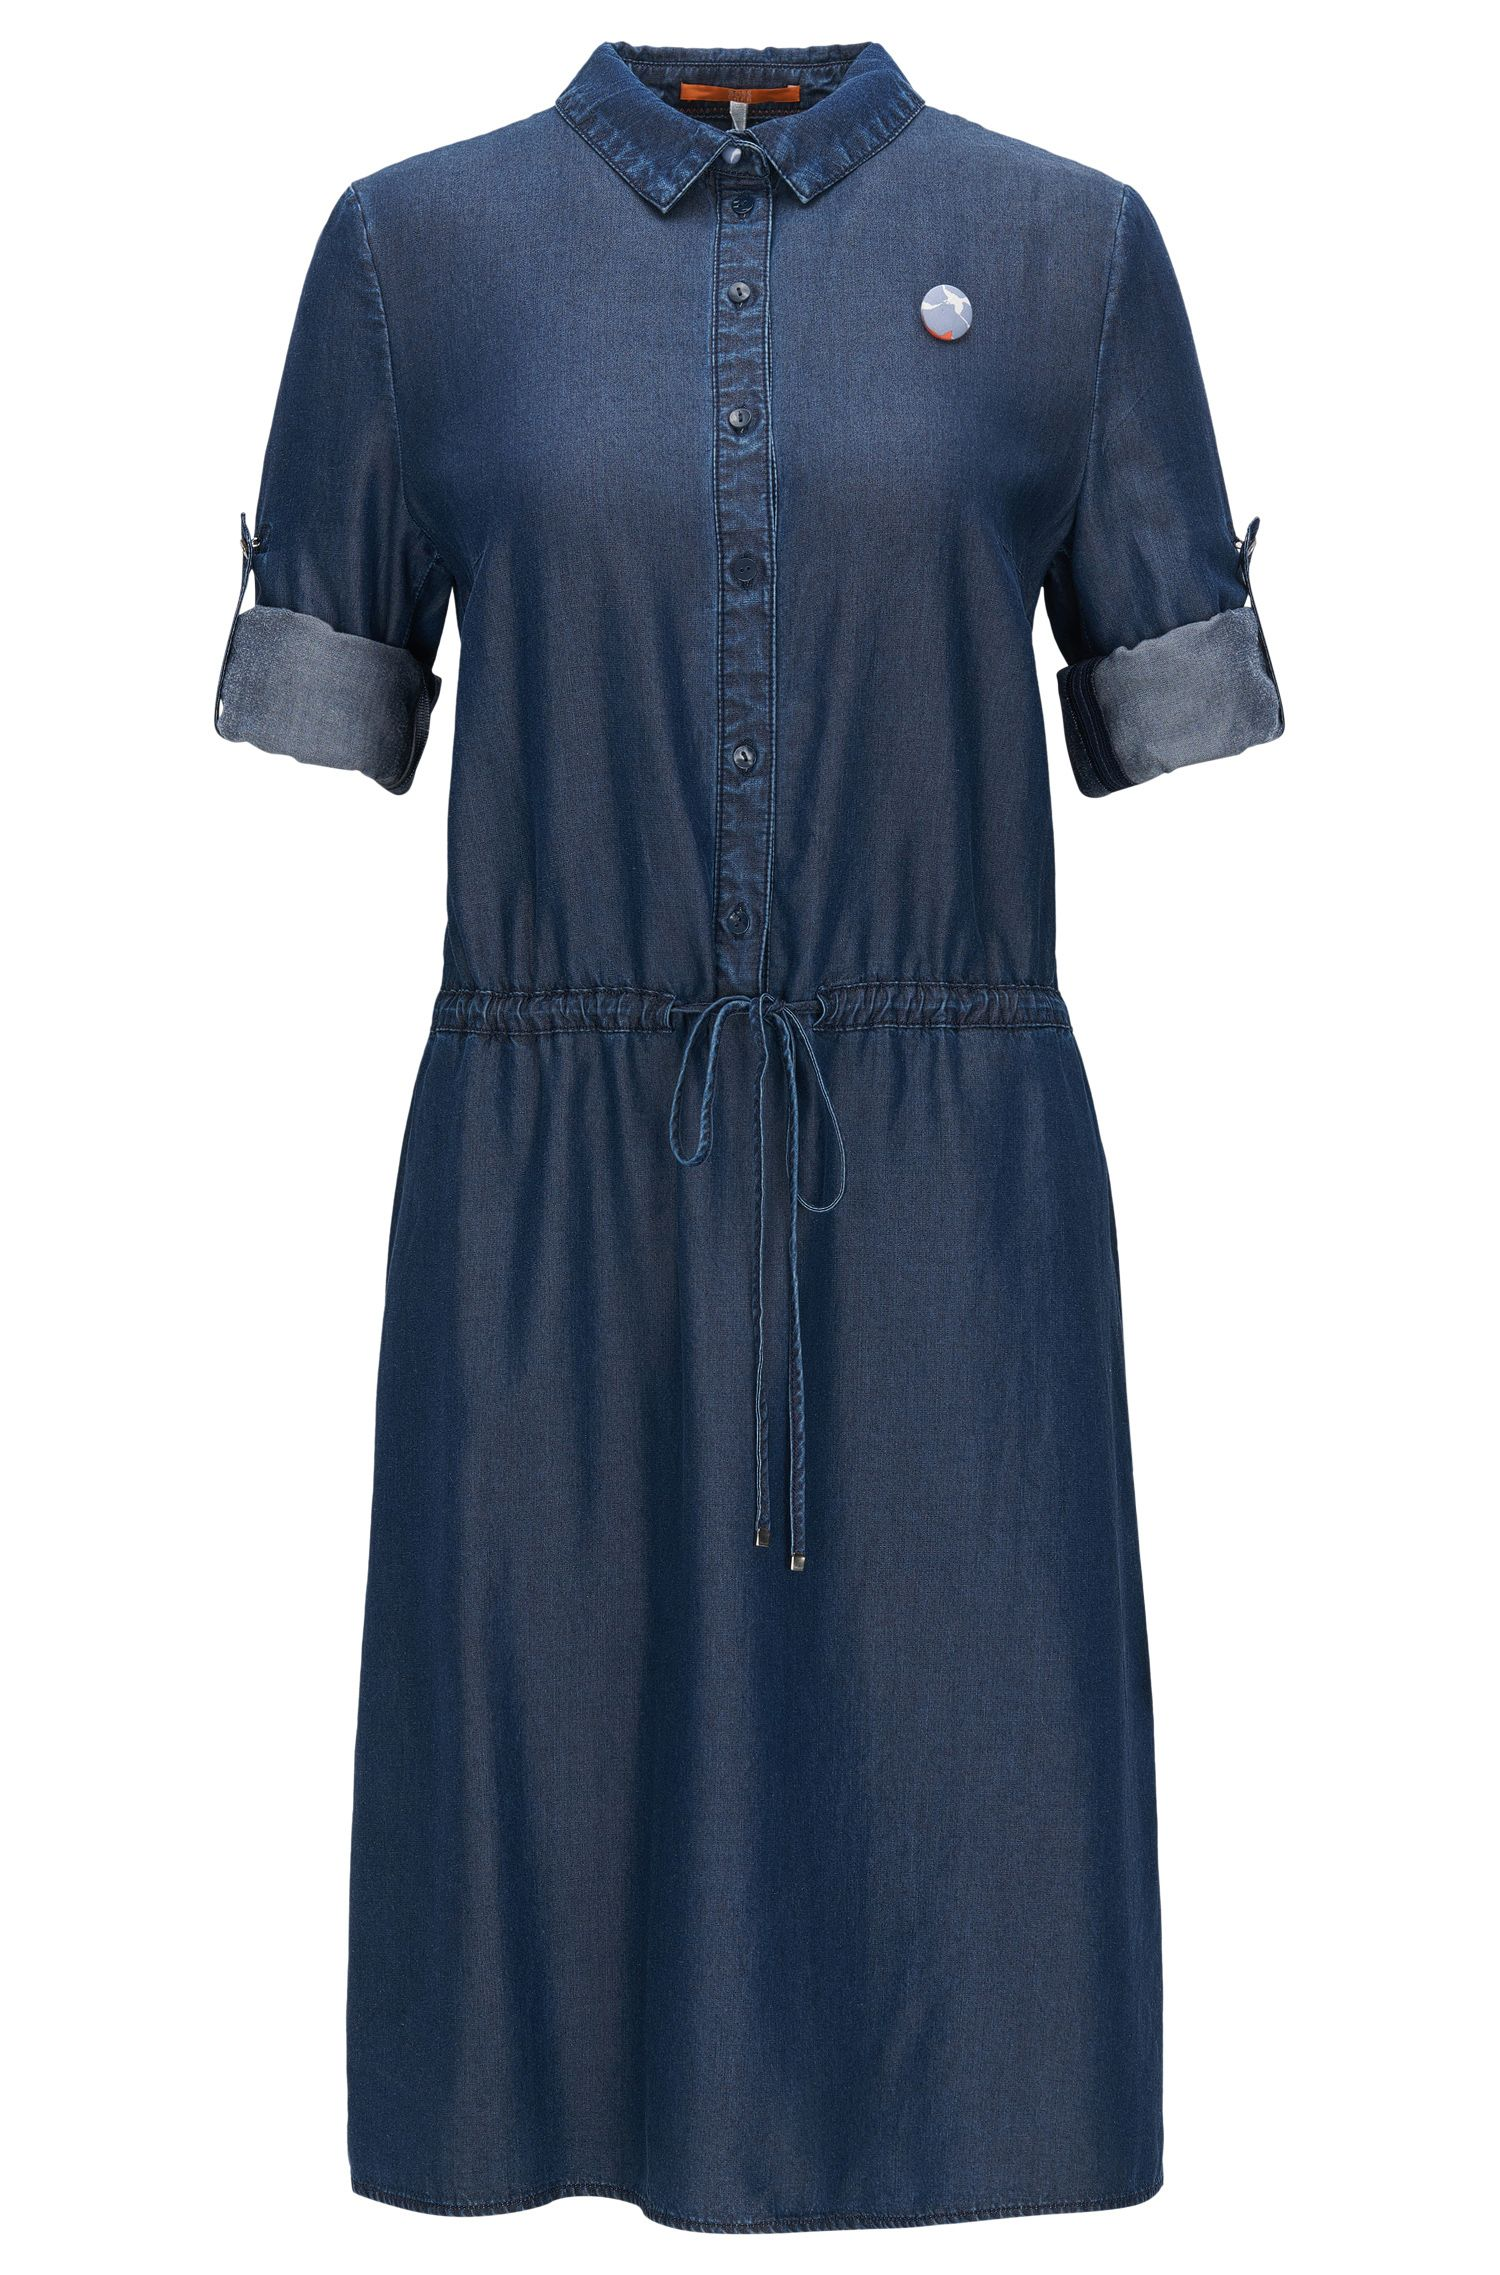 Shirt dress in washed denim